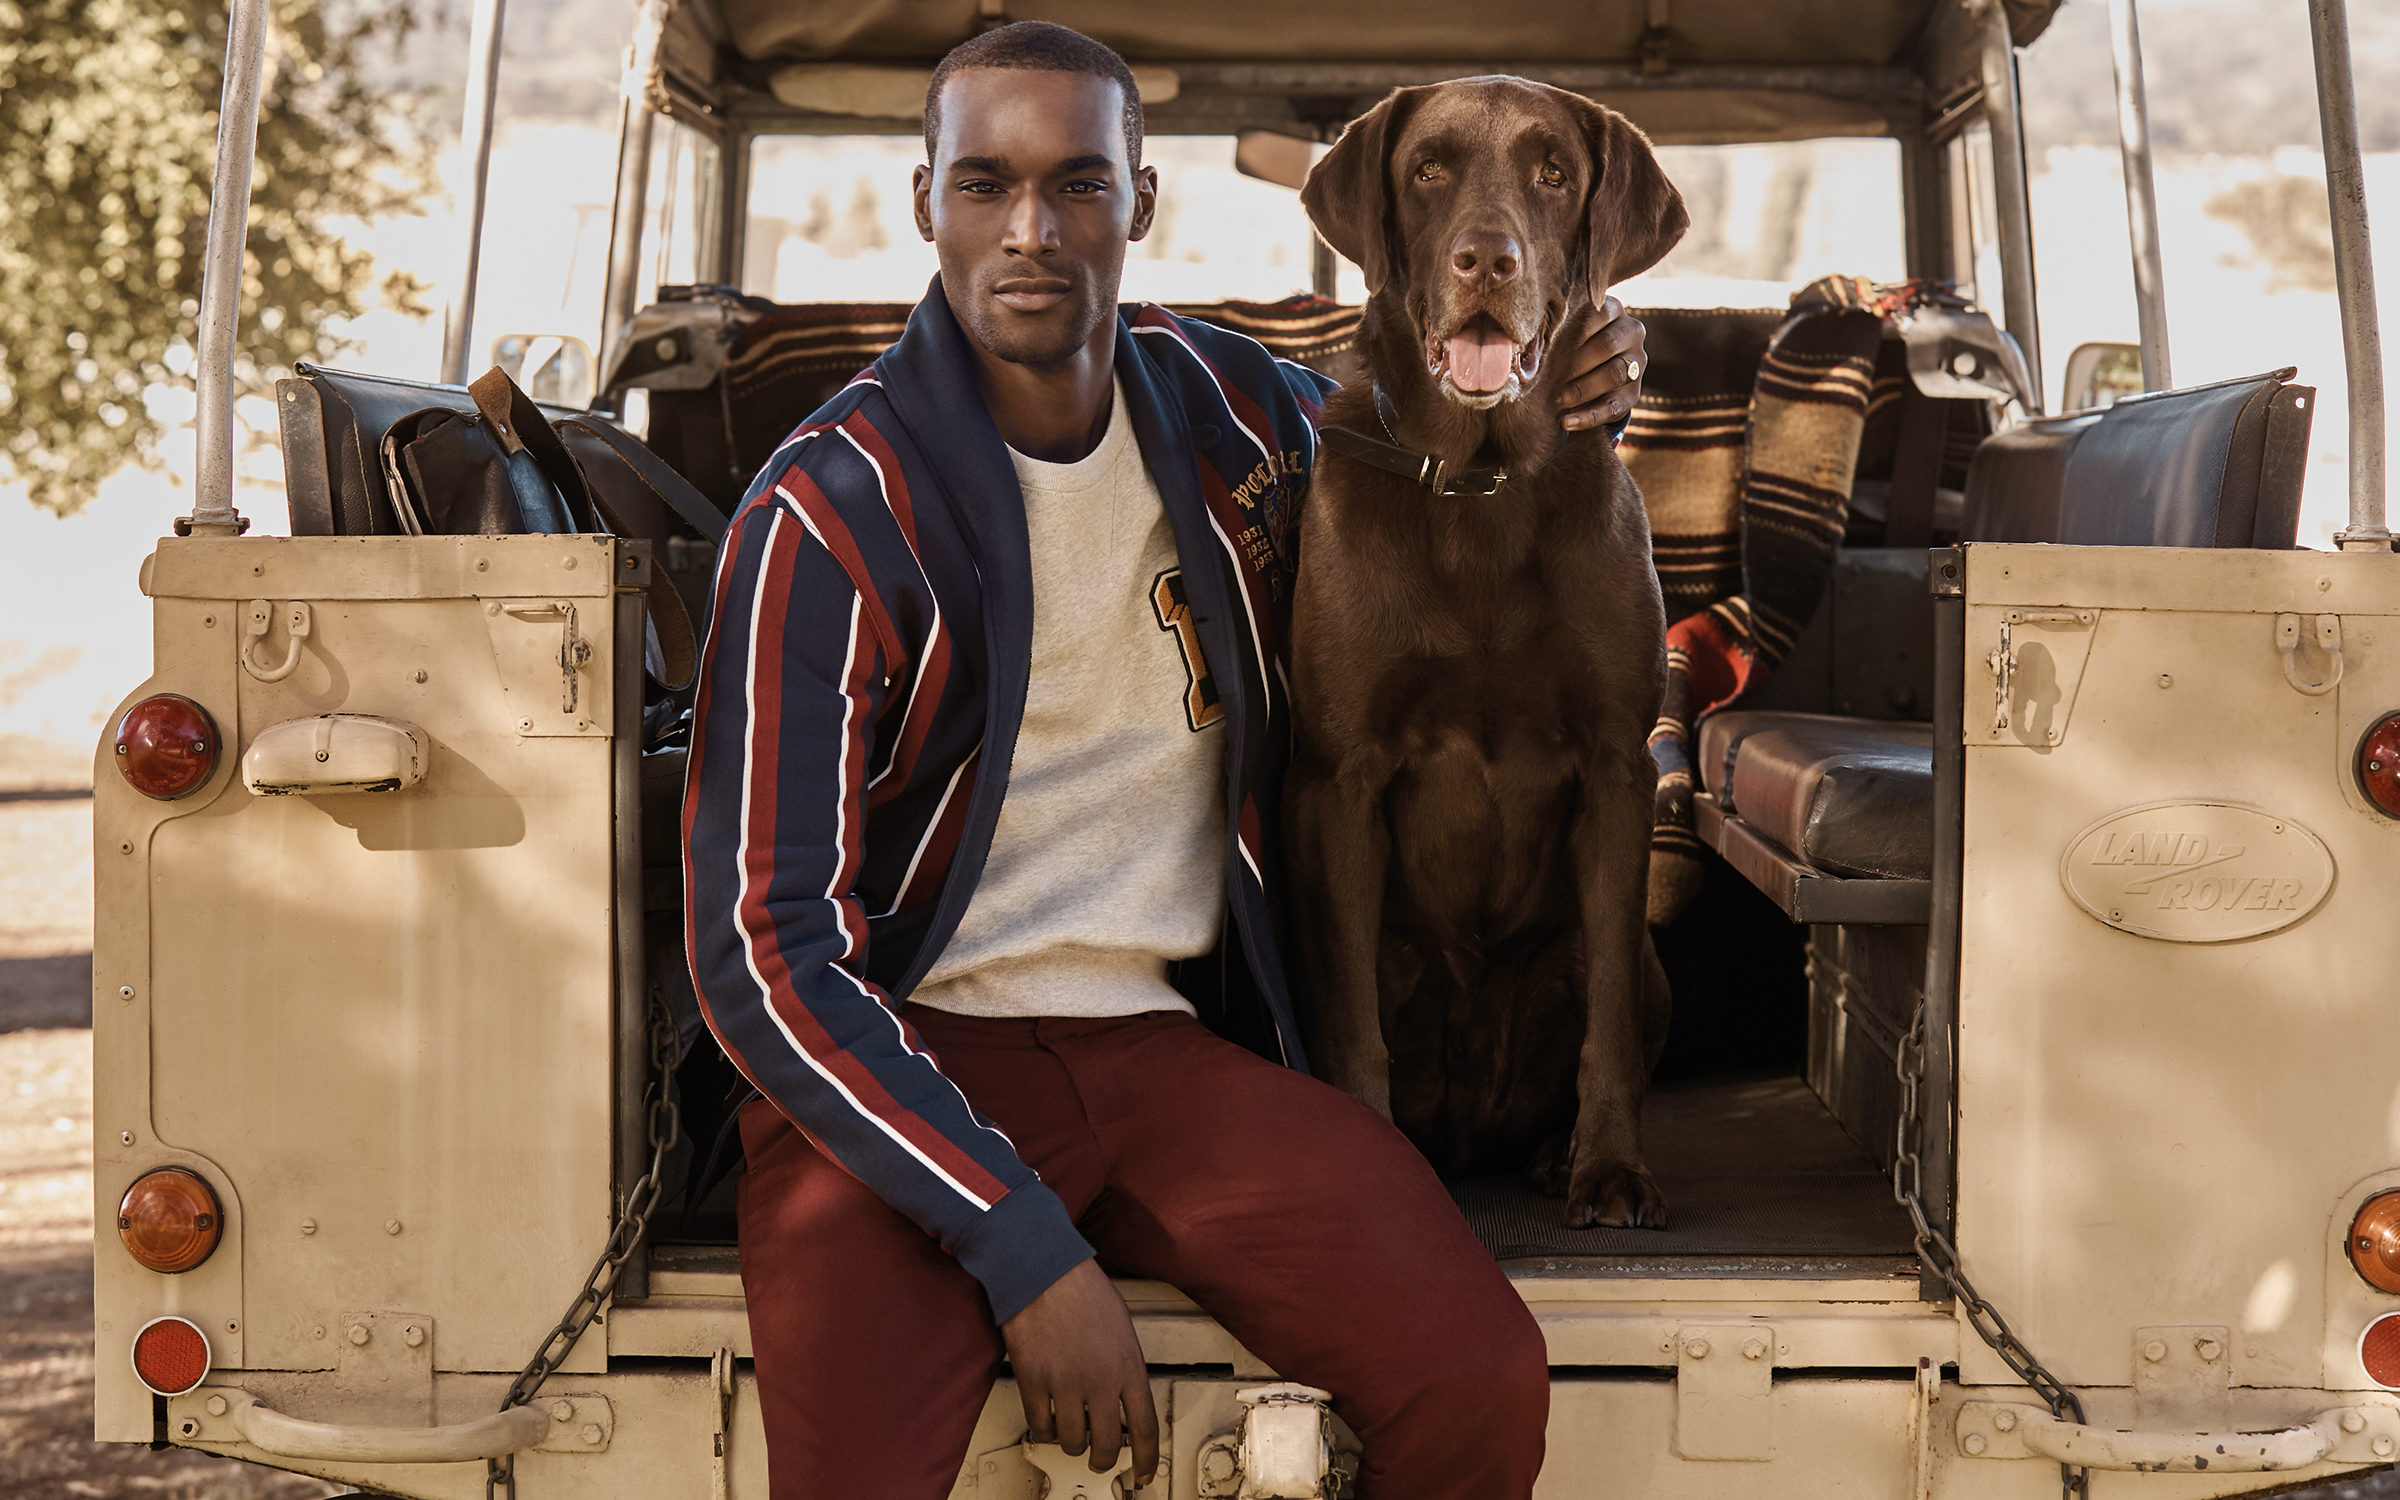 A look from Mr Porter's The World of Ralph Lauren collection